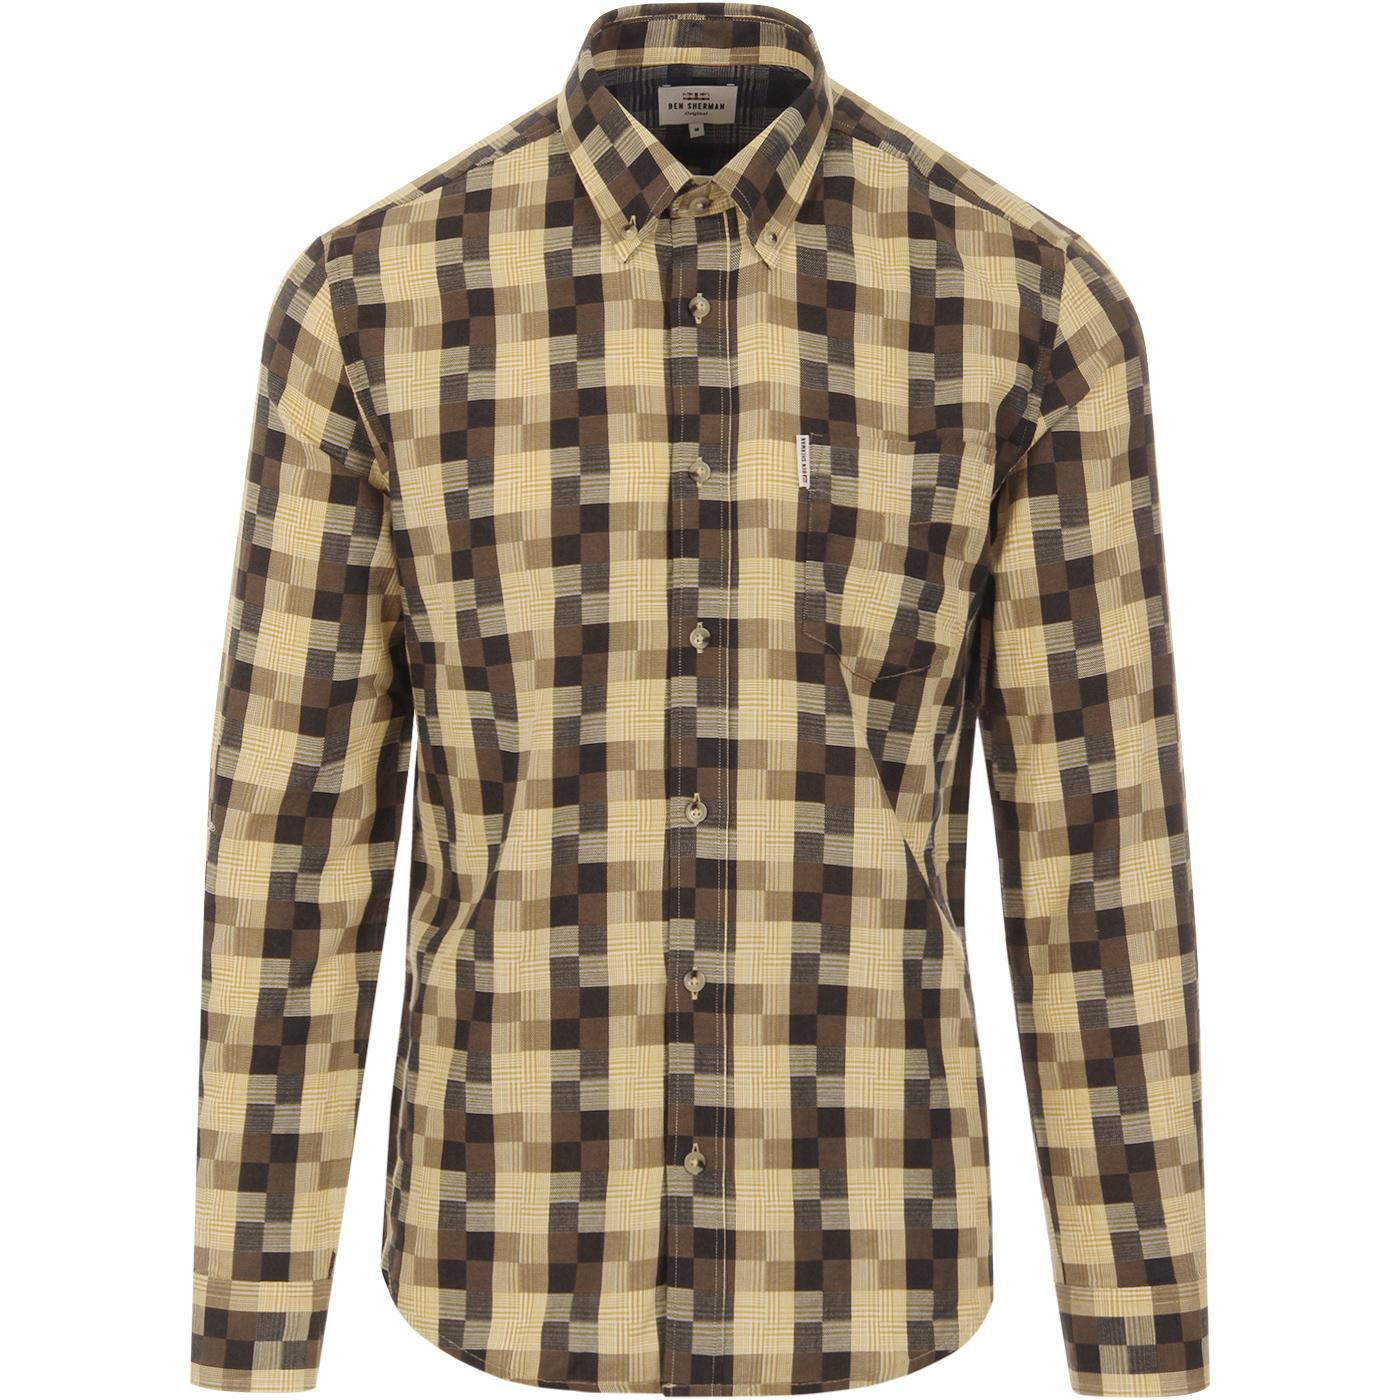 BEN SHERMAN Men's Retro Mod Textured Check Shirt